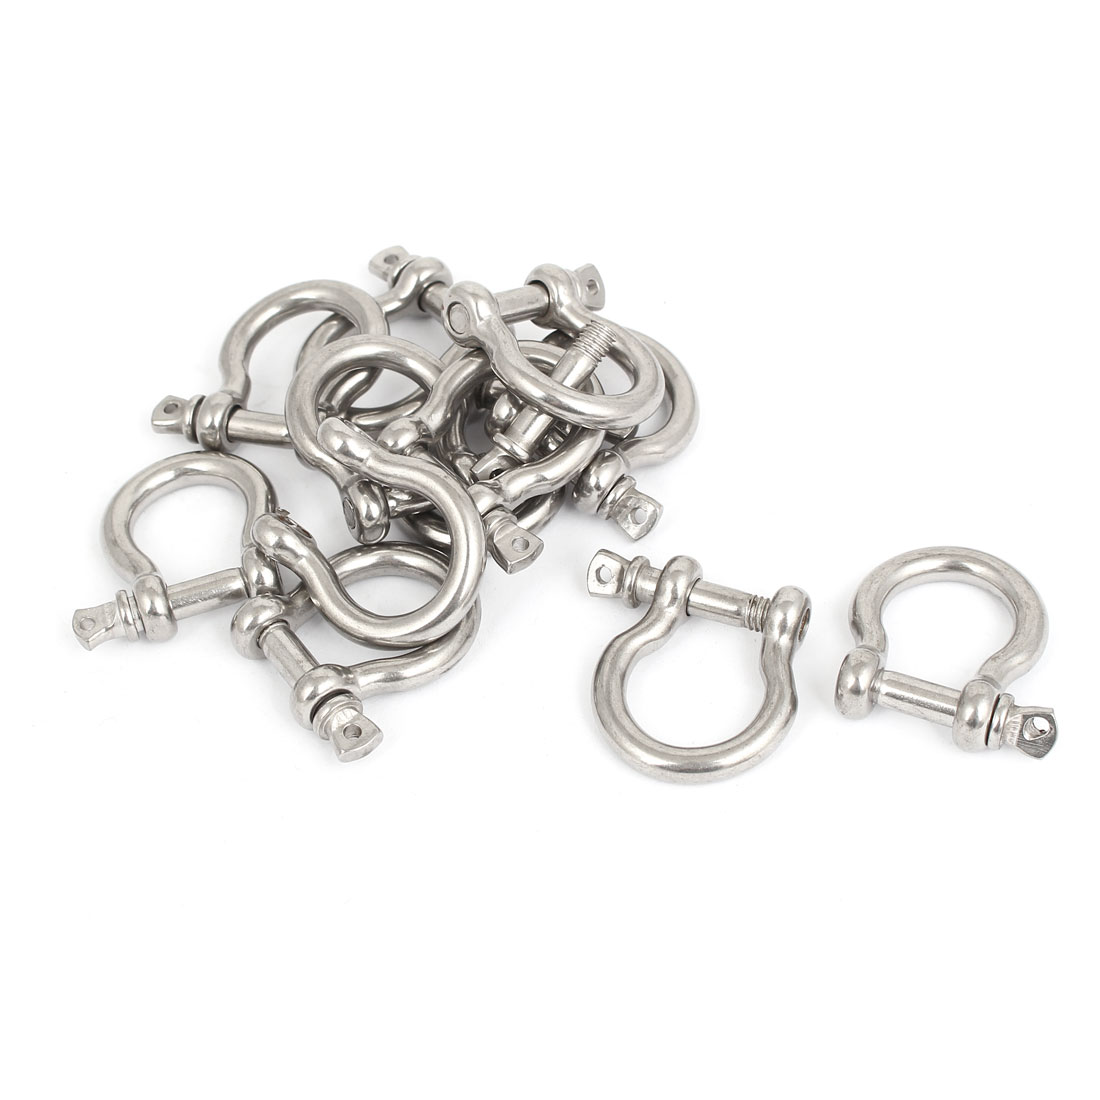 M6 Stainless Steel D Ring Bow Shackle U Lock Survival Chain Buckle 12 Pcs